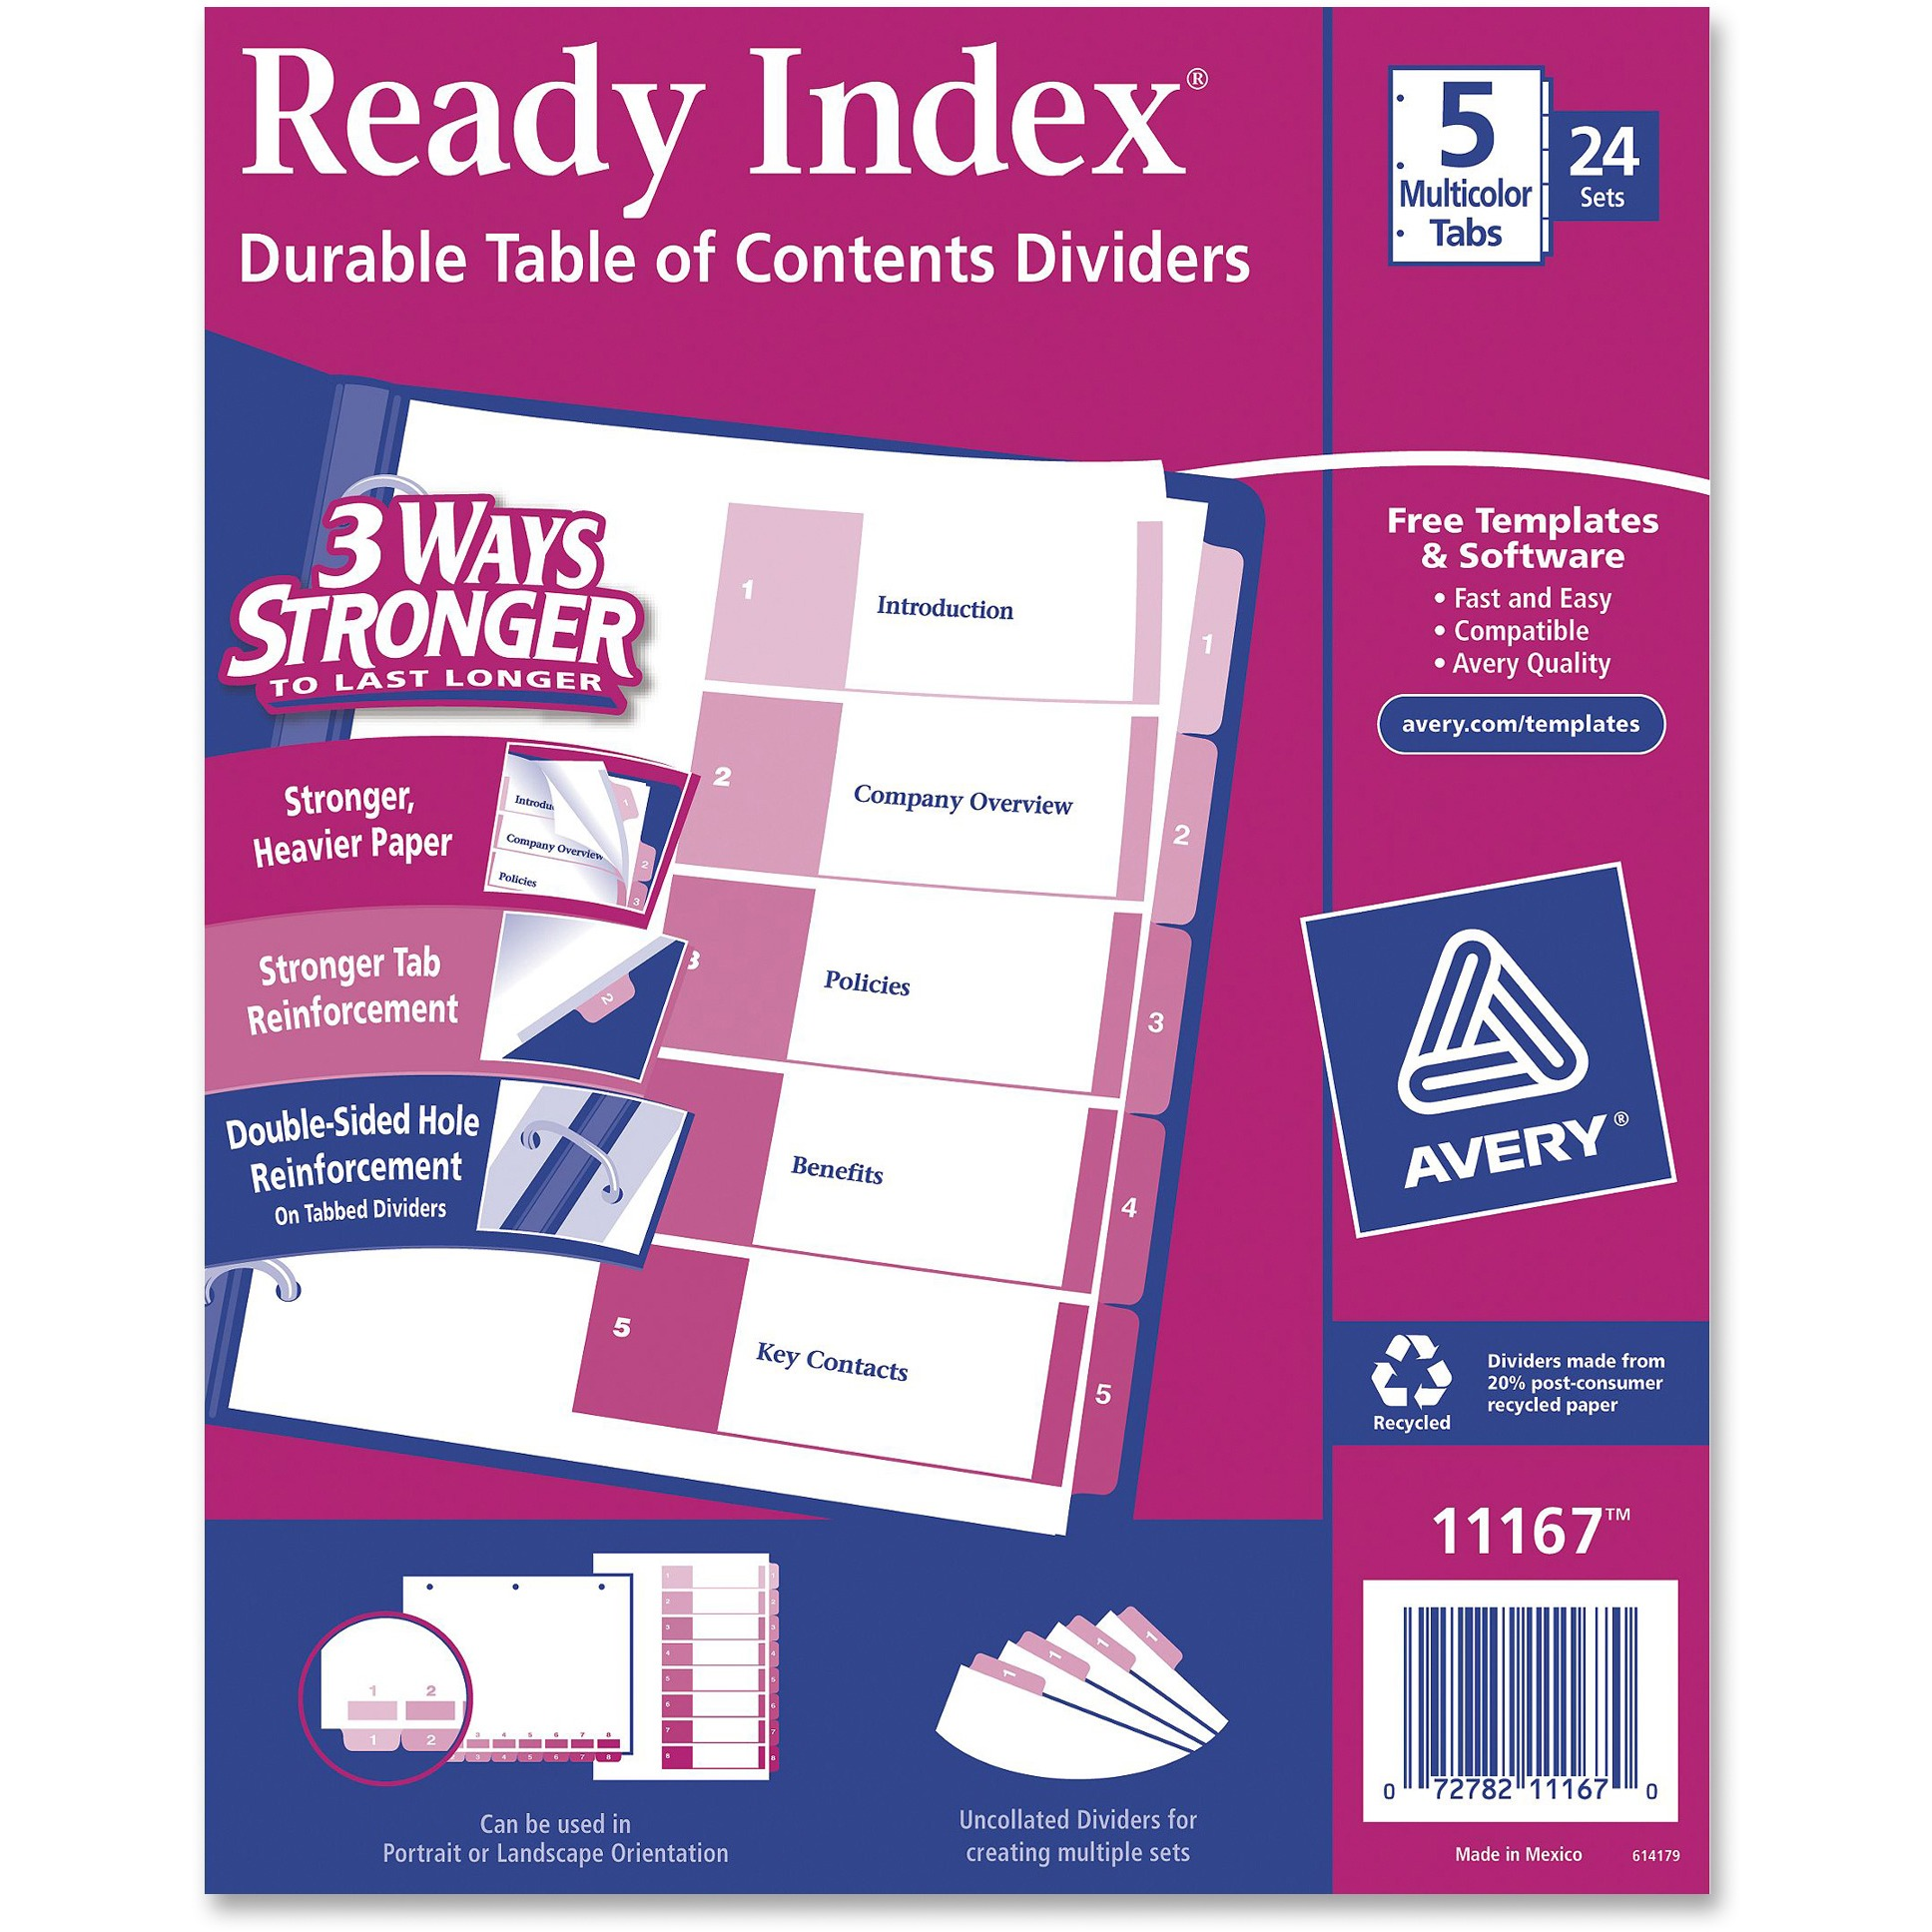 Avery Ready Index Table of Contents Dividers, 5 Tab/Divider, 24 Count (11167)